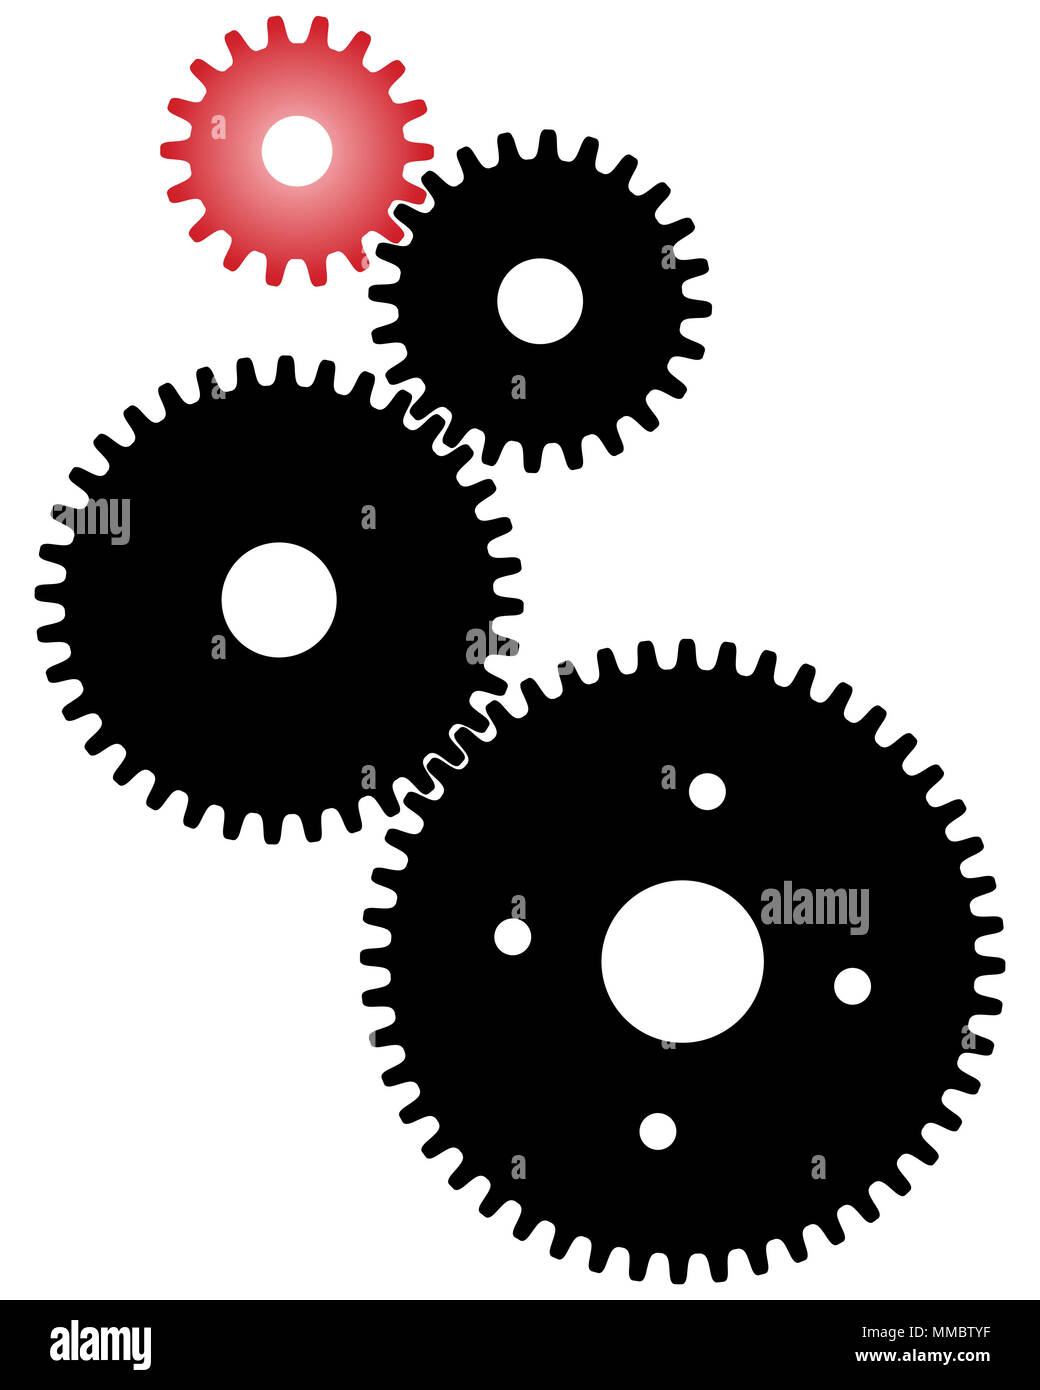 Black And Red Gears For Teamwork Symbolism Stock Photo 184657859